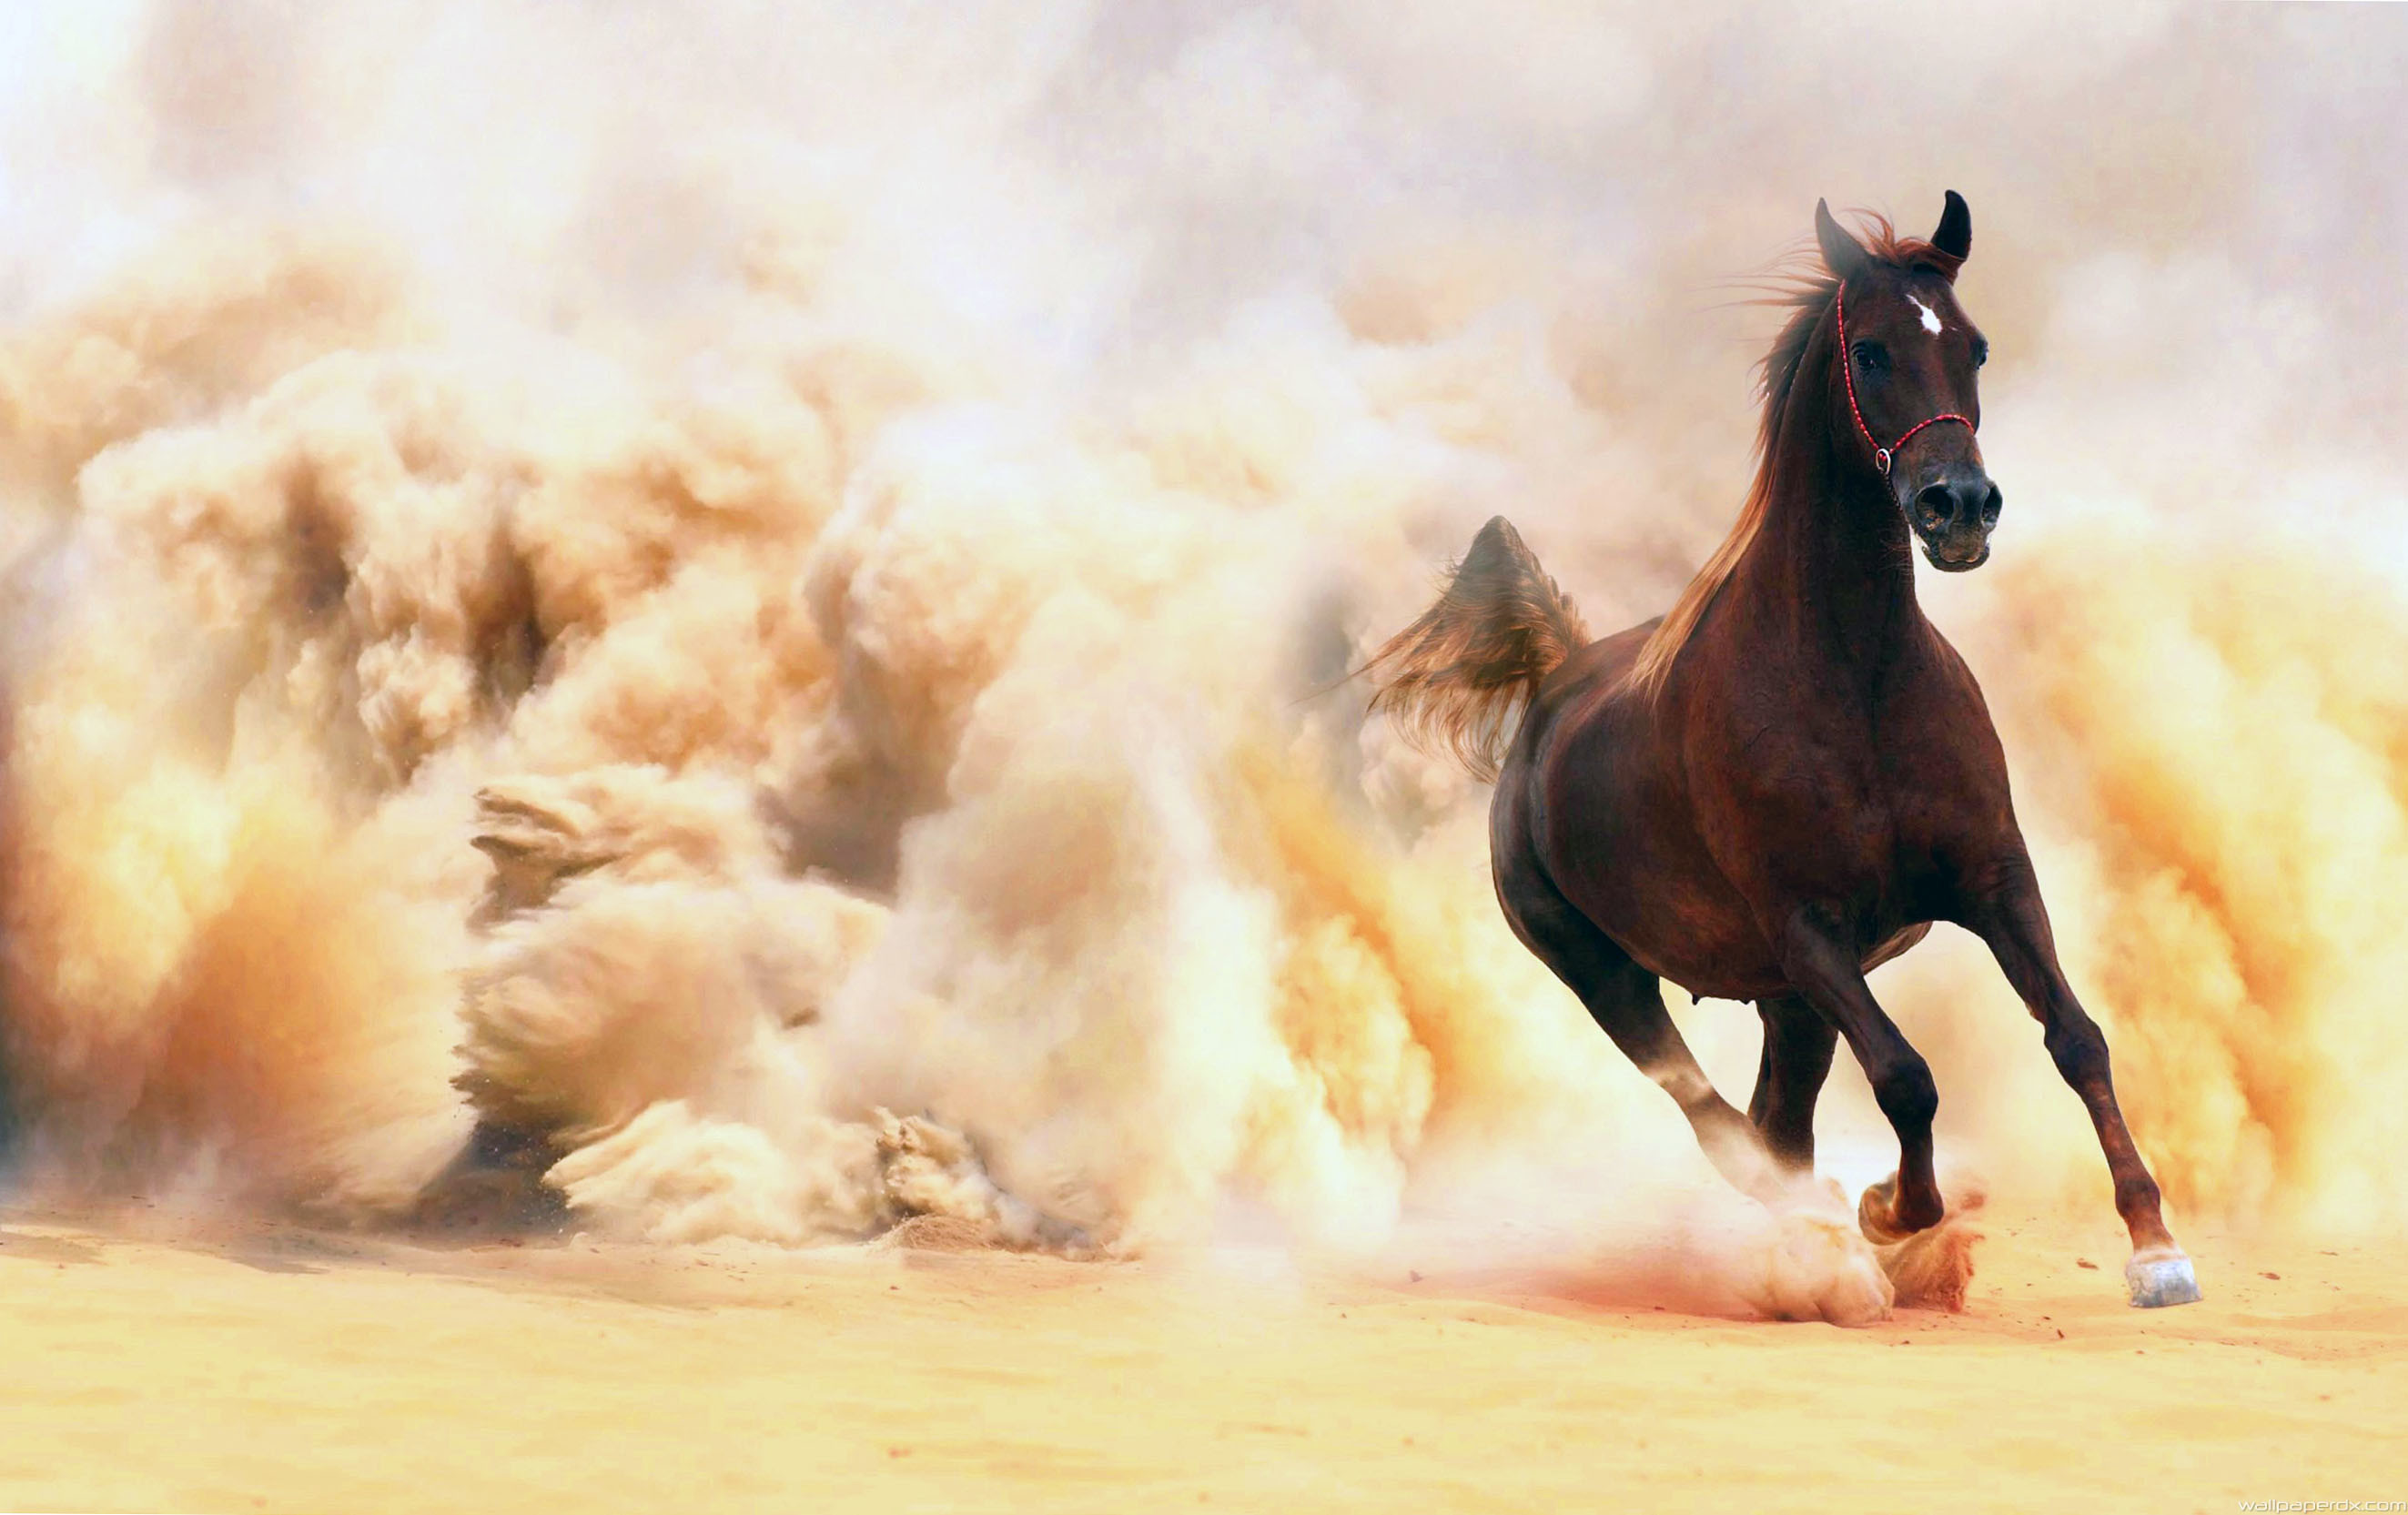 Colors Data Src Arabian Horse Wallpaper For Andro Inspire Thought In Hindi 2646x1665 Wallpaper Teahub Io